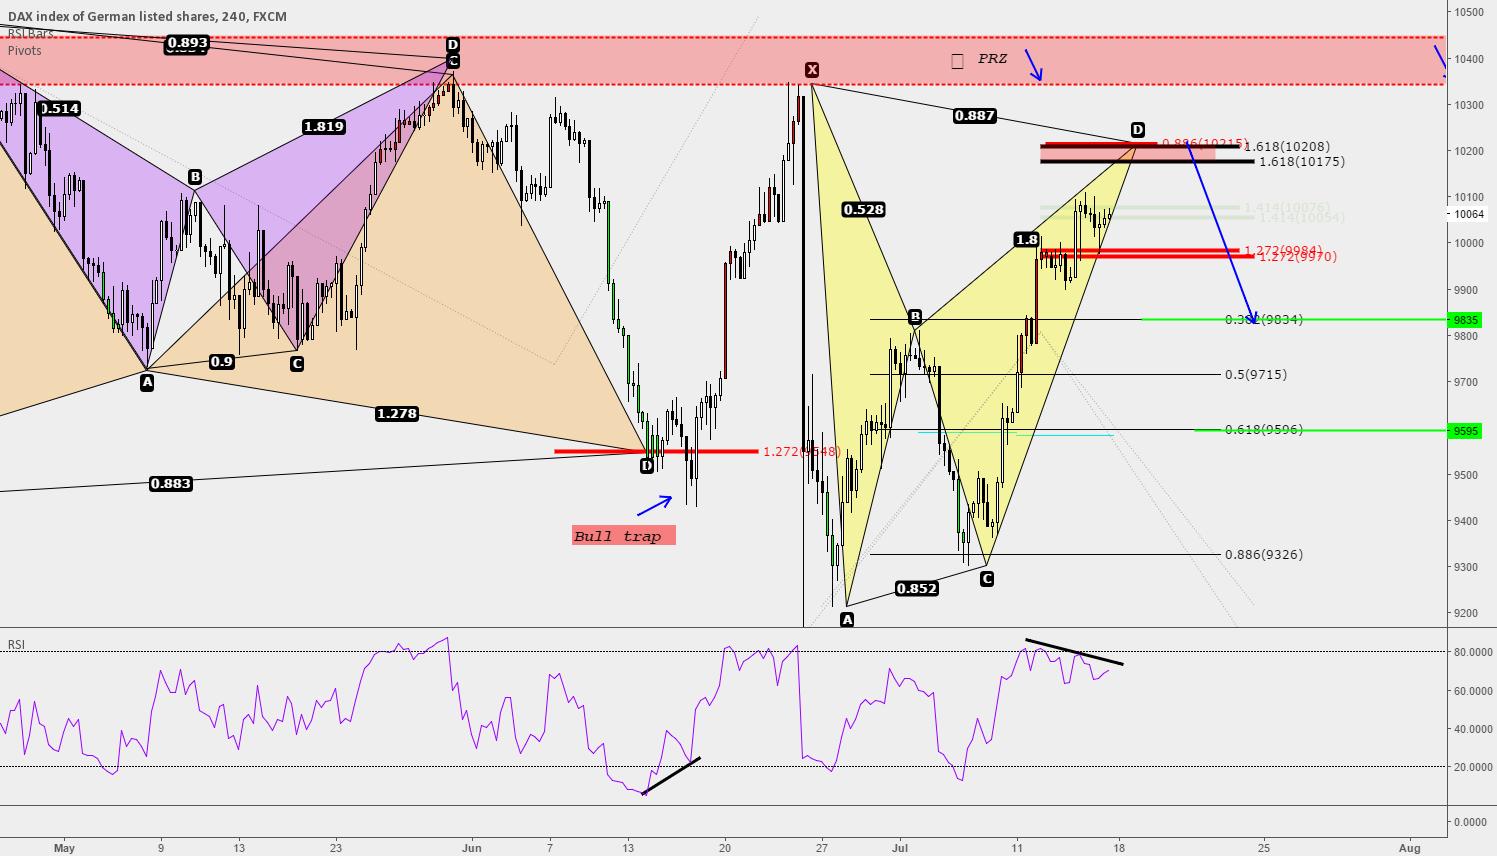 DAX - BAT ALMOST COMPLETED - DIV